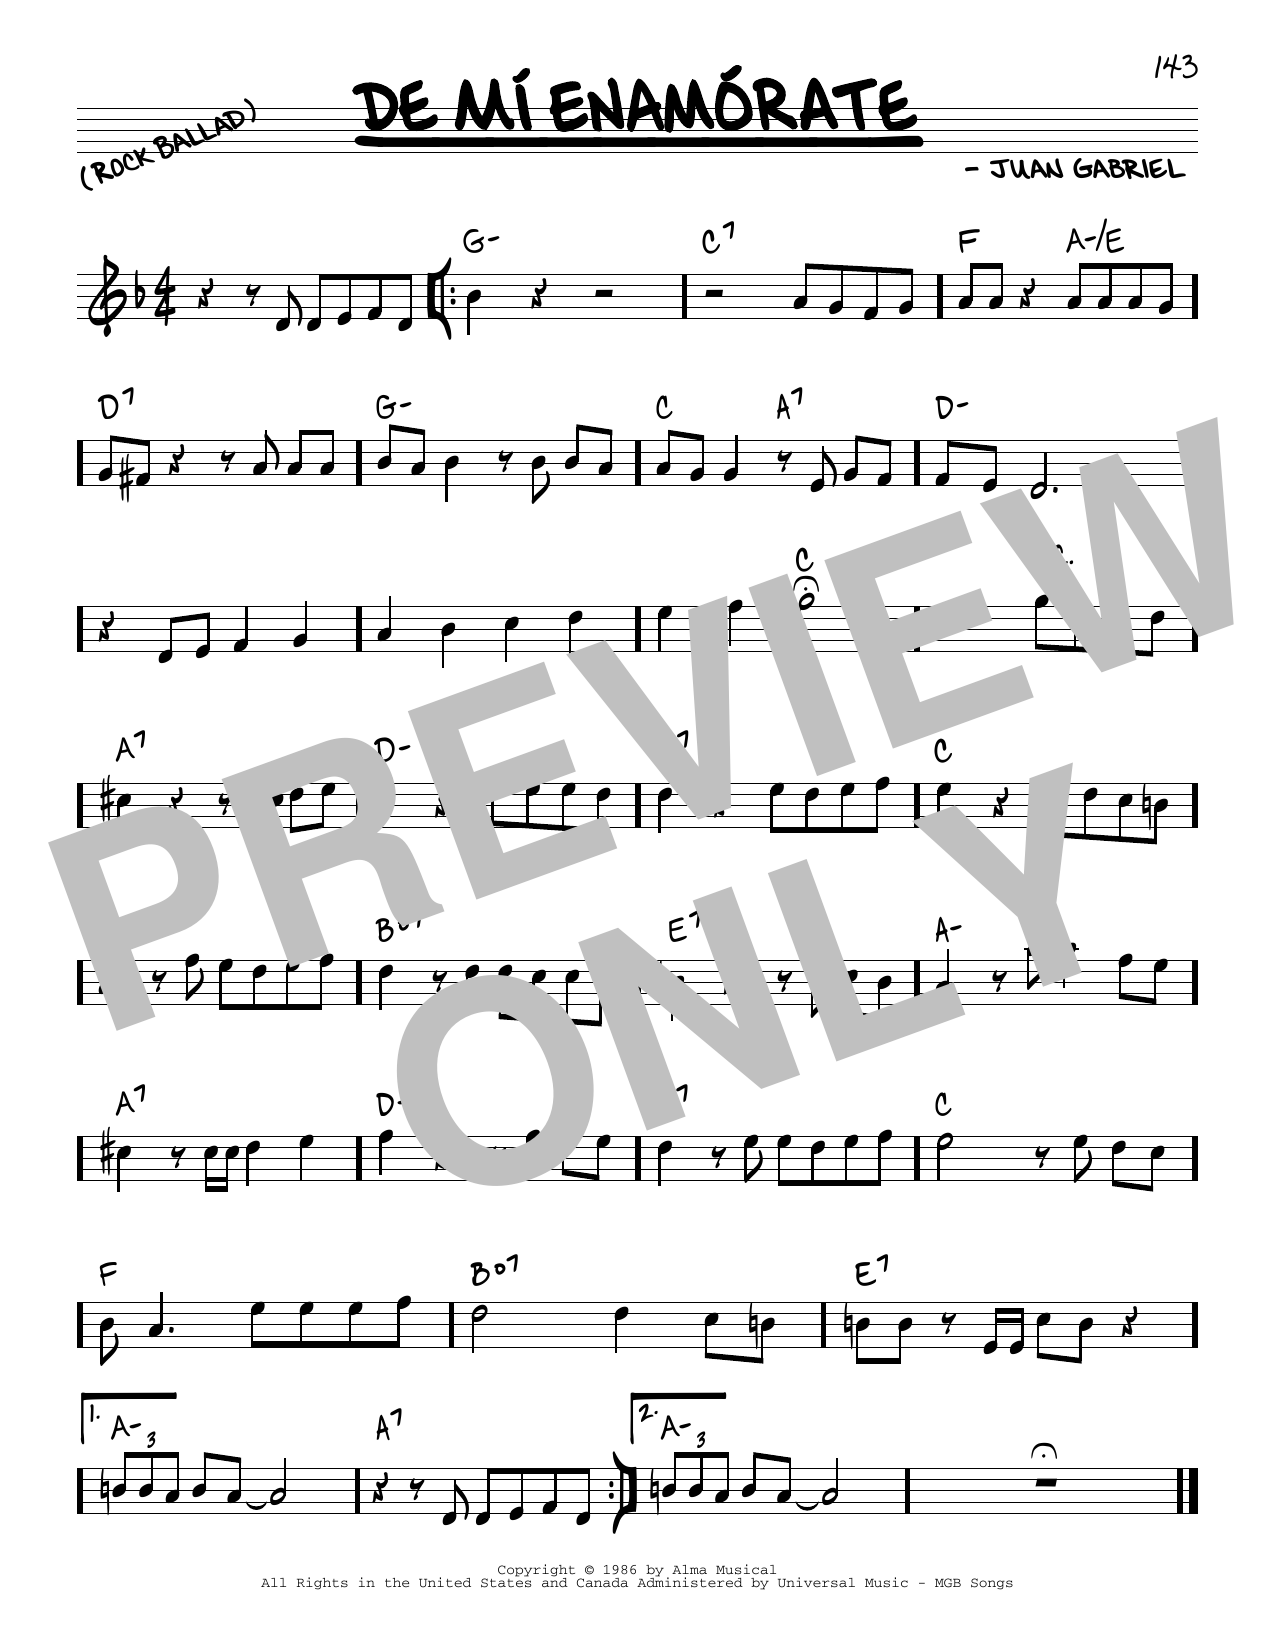 Juan Gabriel De Mi Enamorate sheet music notes and chords. Download Printable PDF.